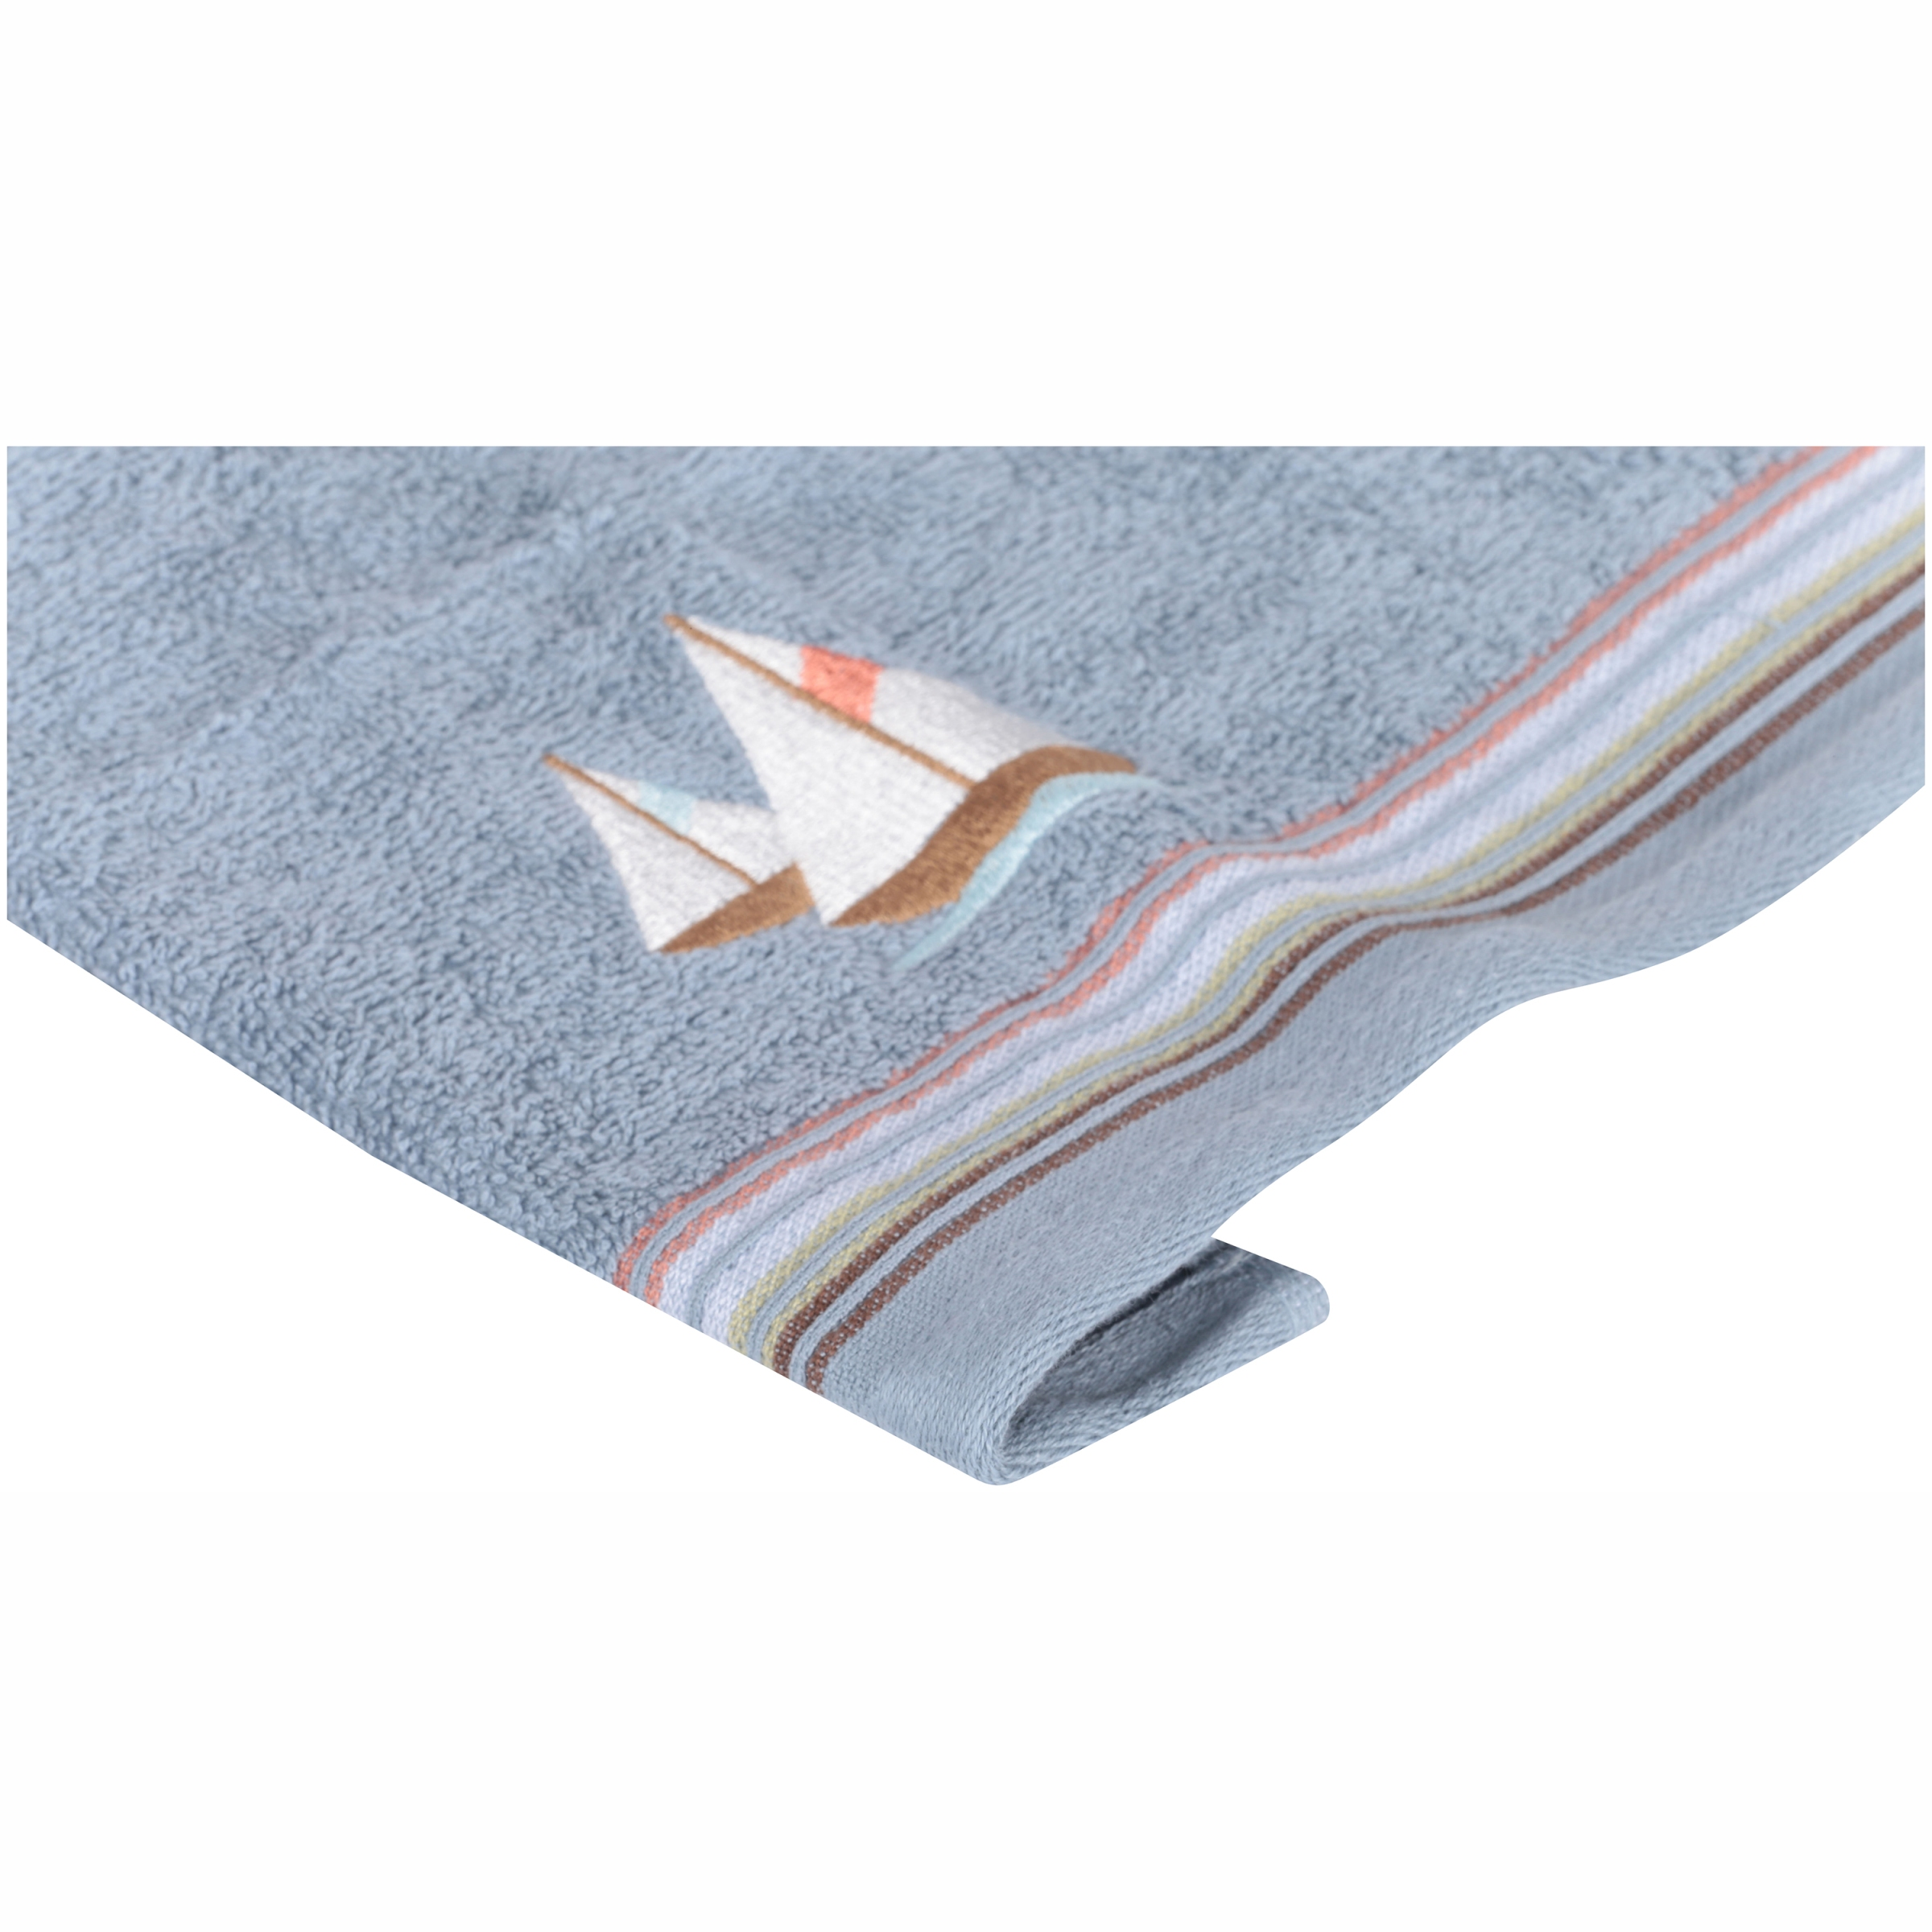 Mainstays Catching Rays Bath Towel Collection by Saturday Knight LTD